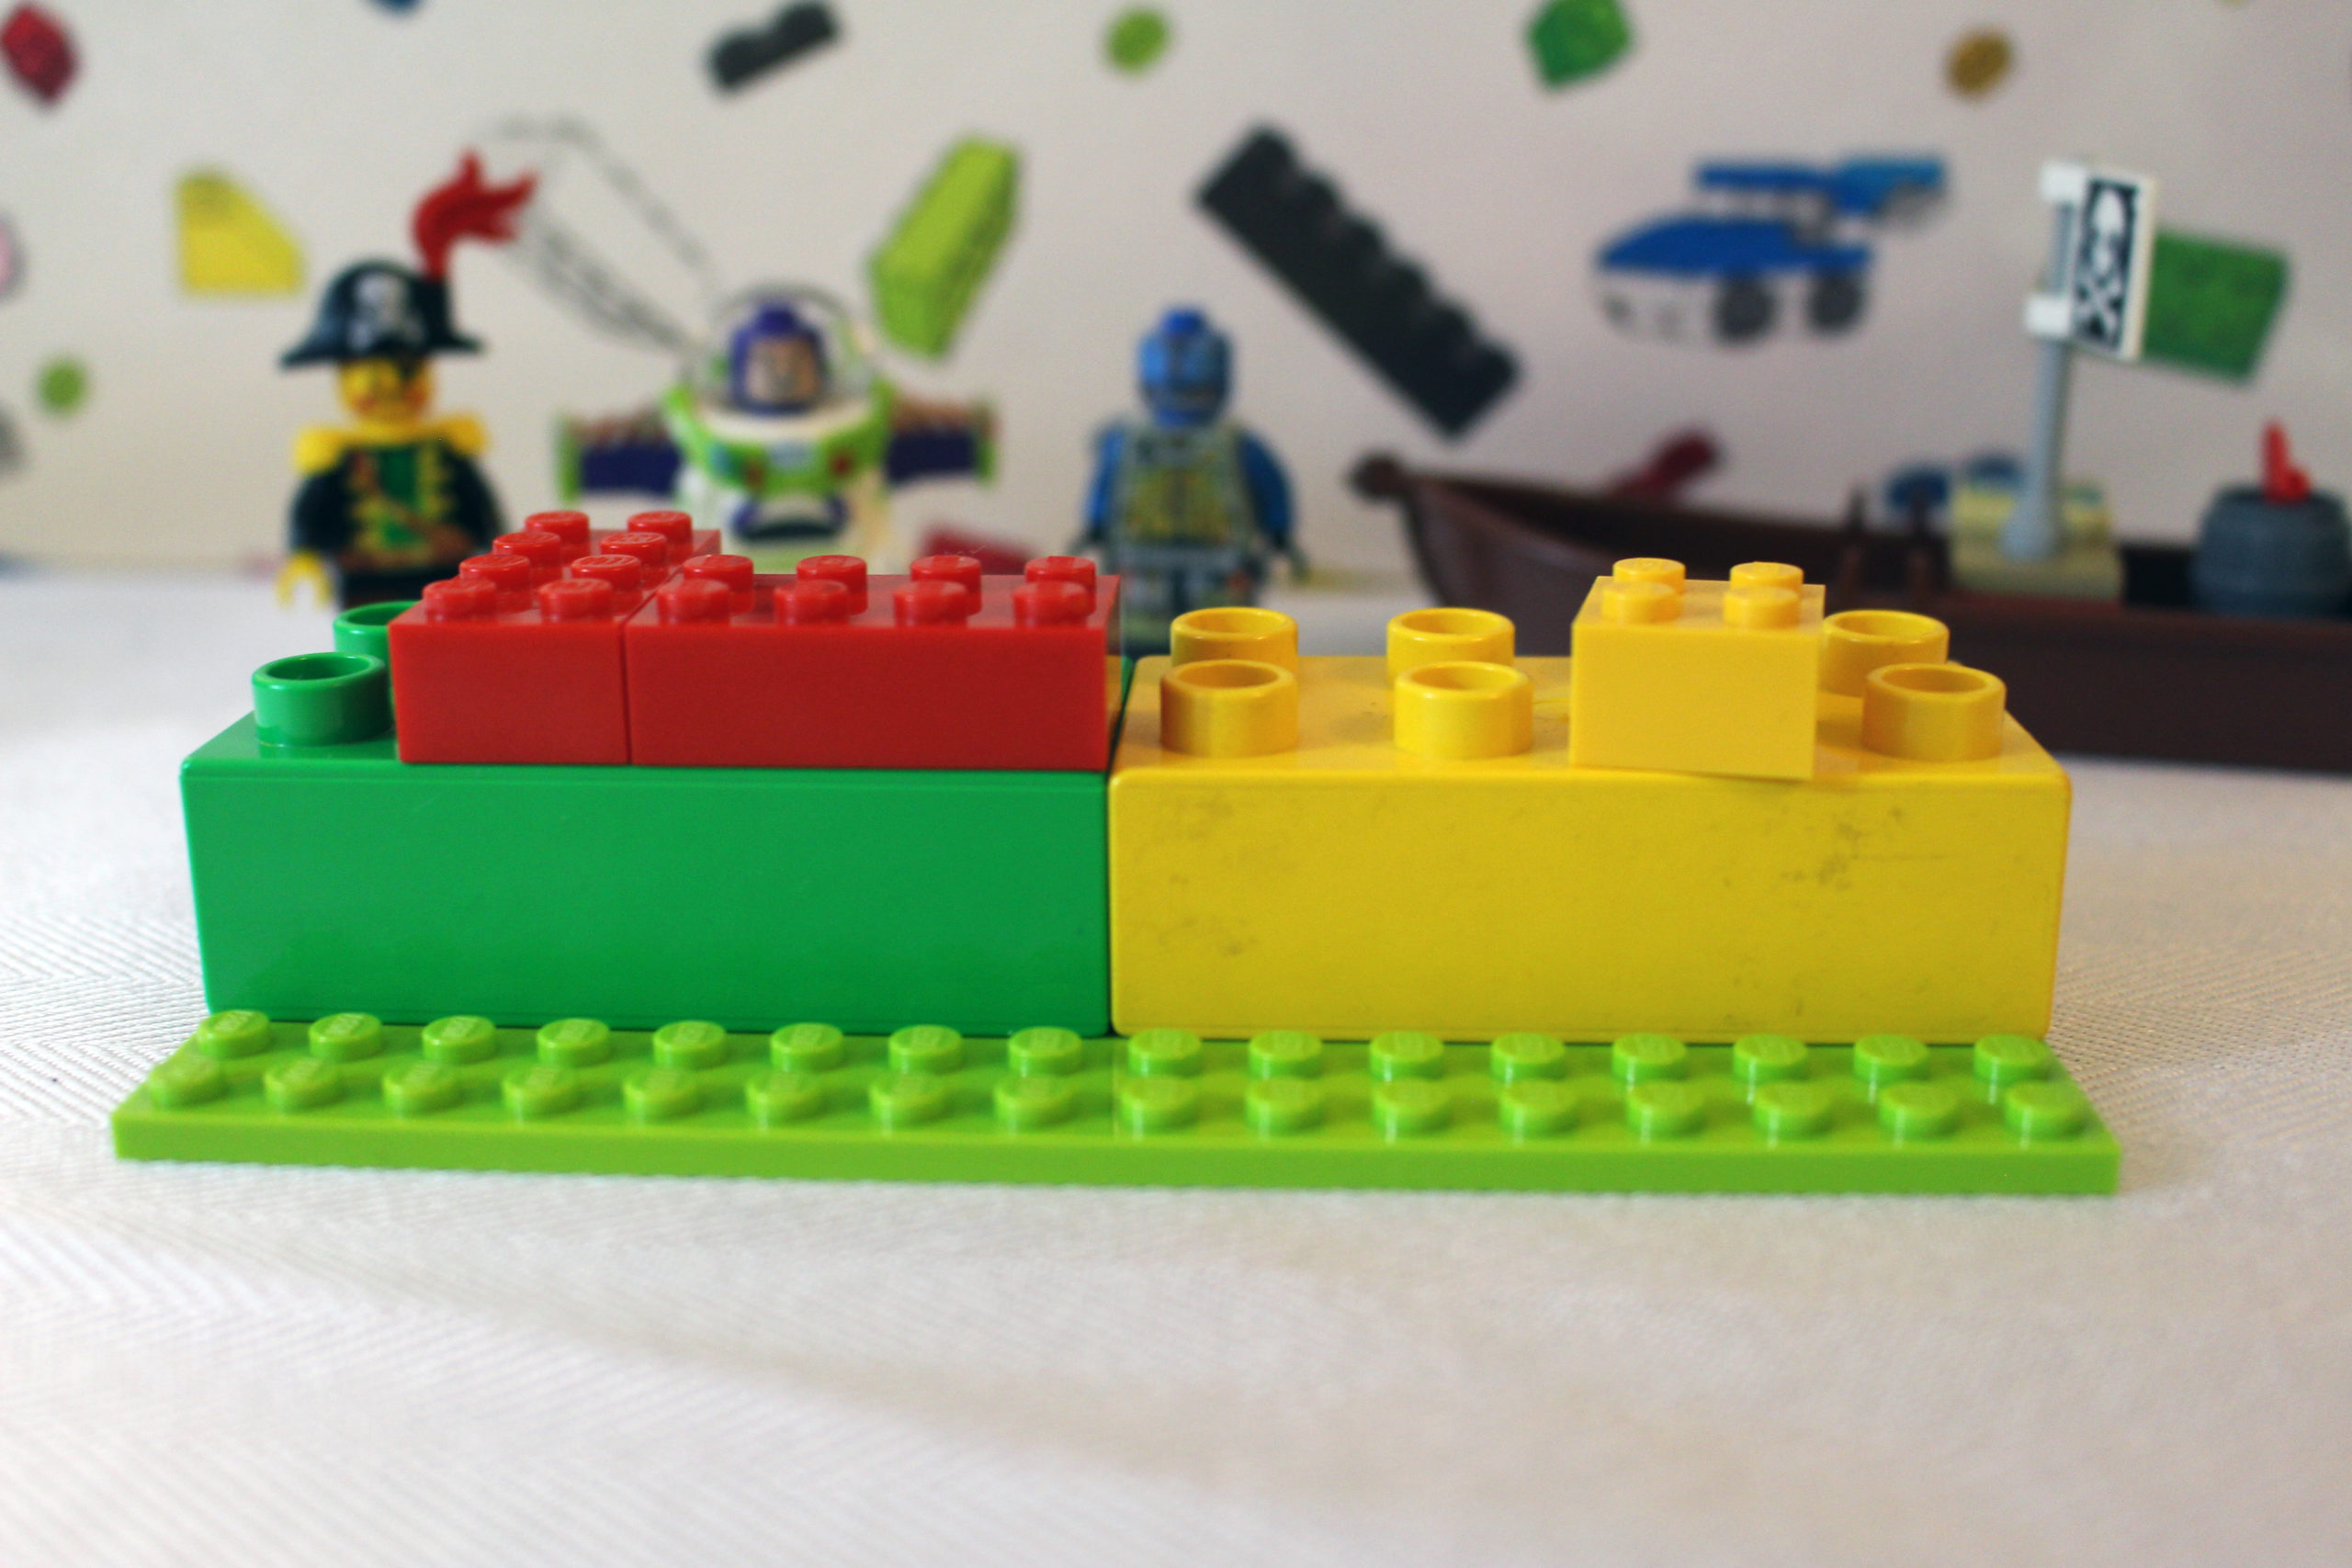 lego facts: System and DUPLO